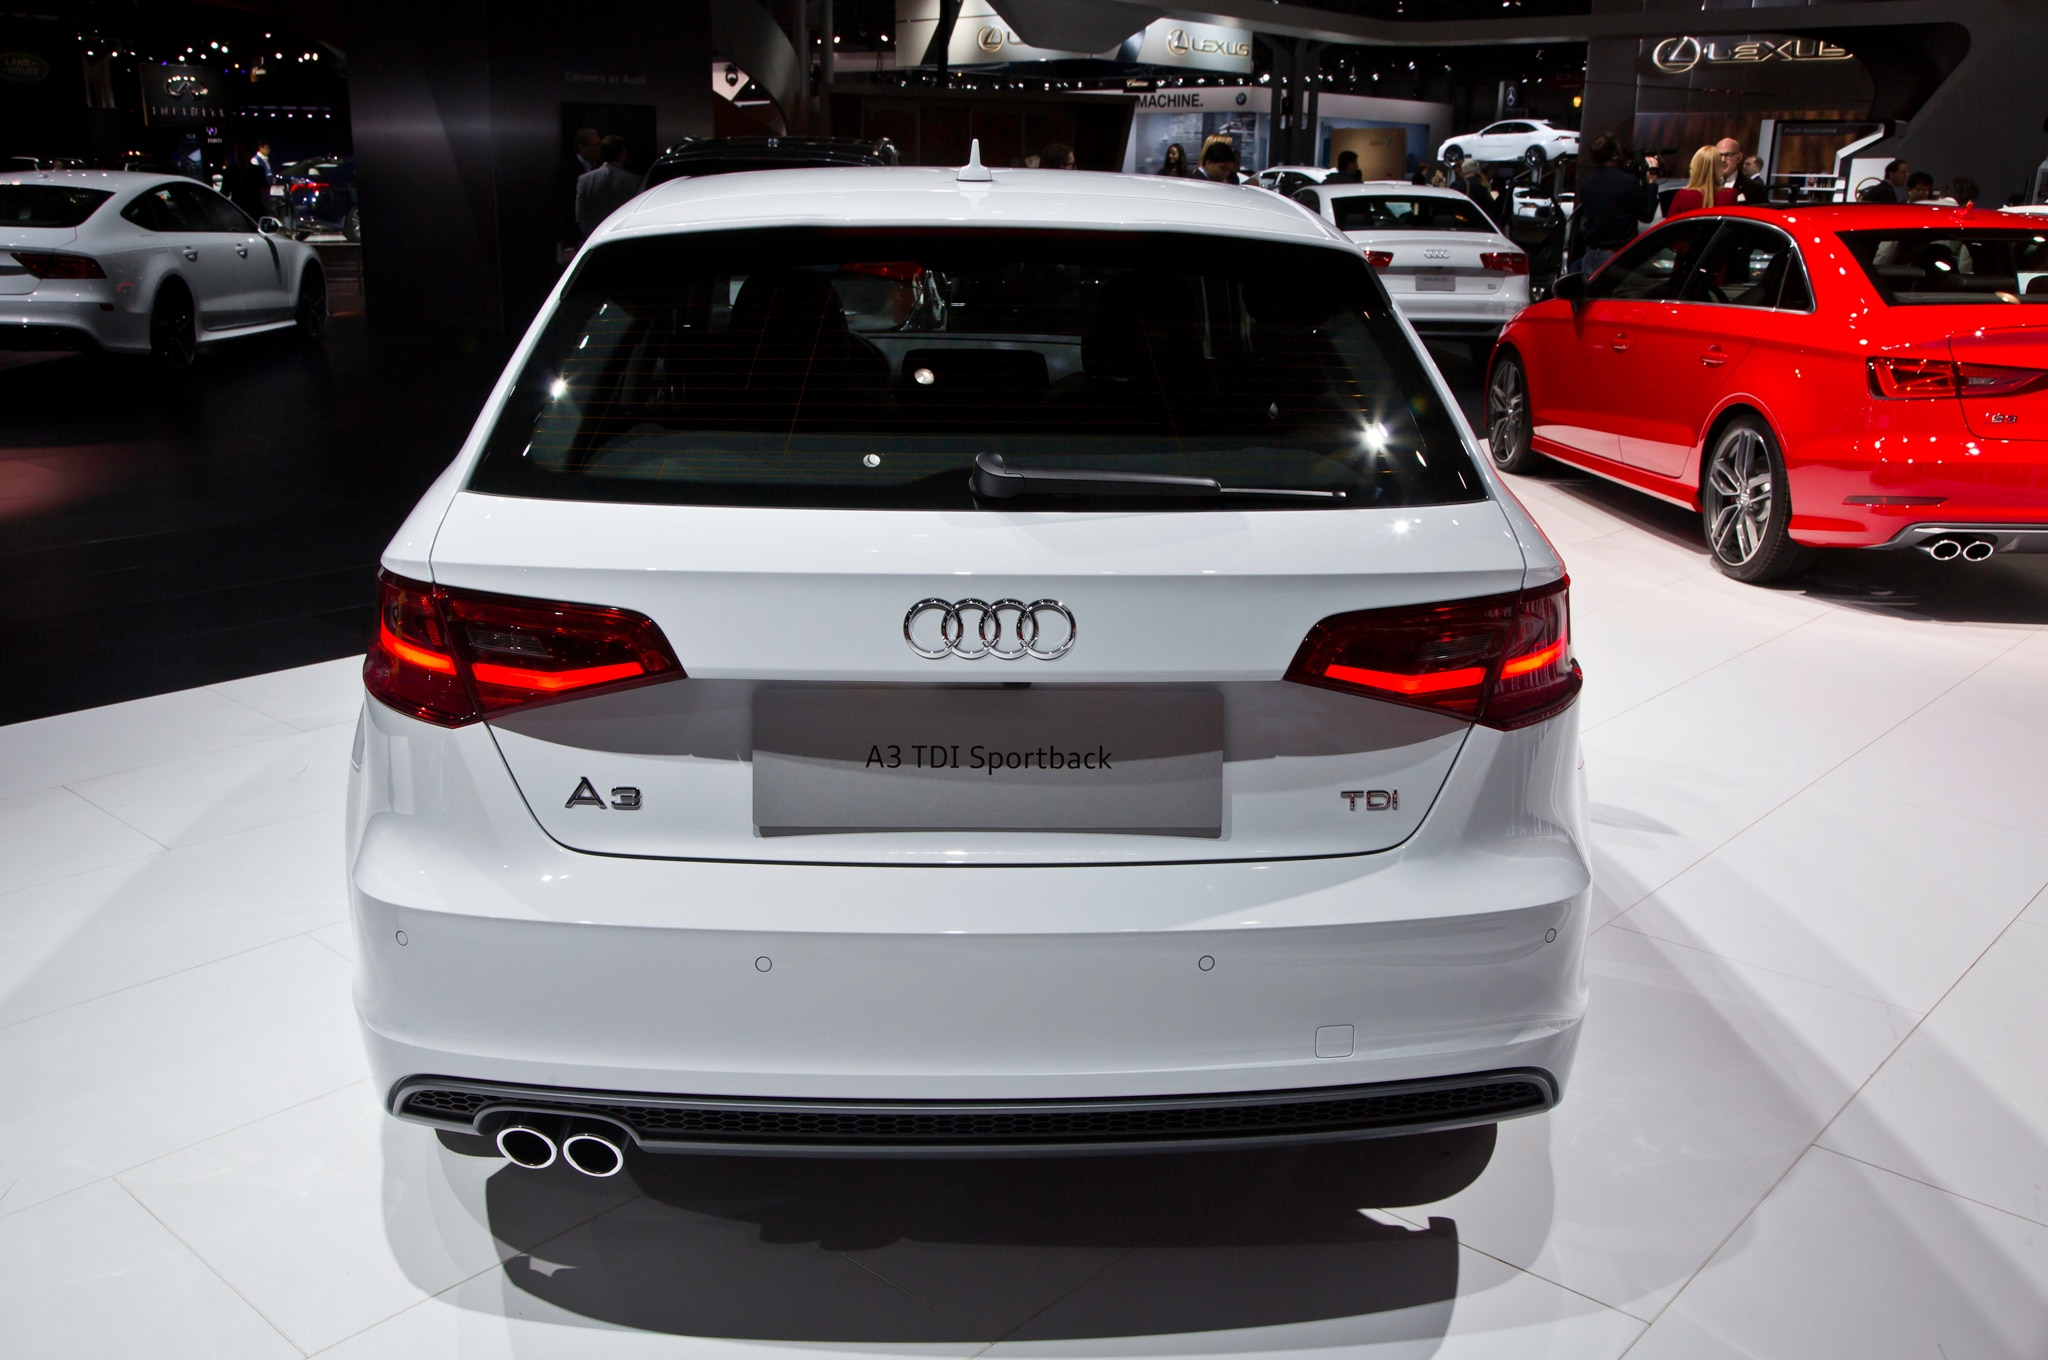 Show More The 2016 Audi A3 Tdi Sportback